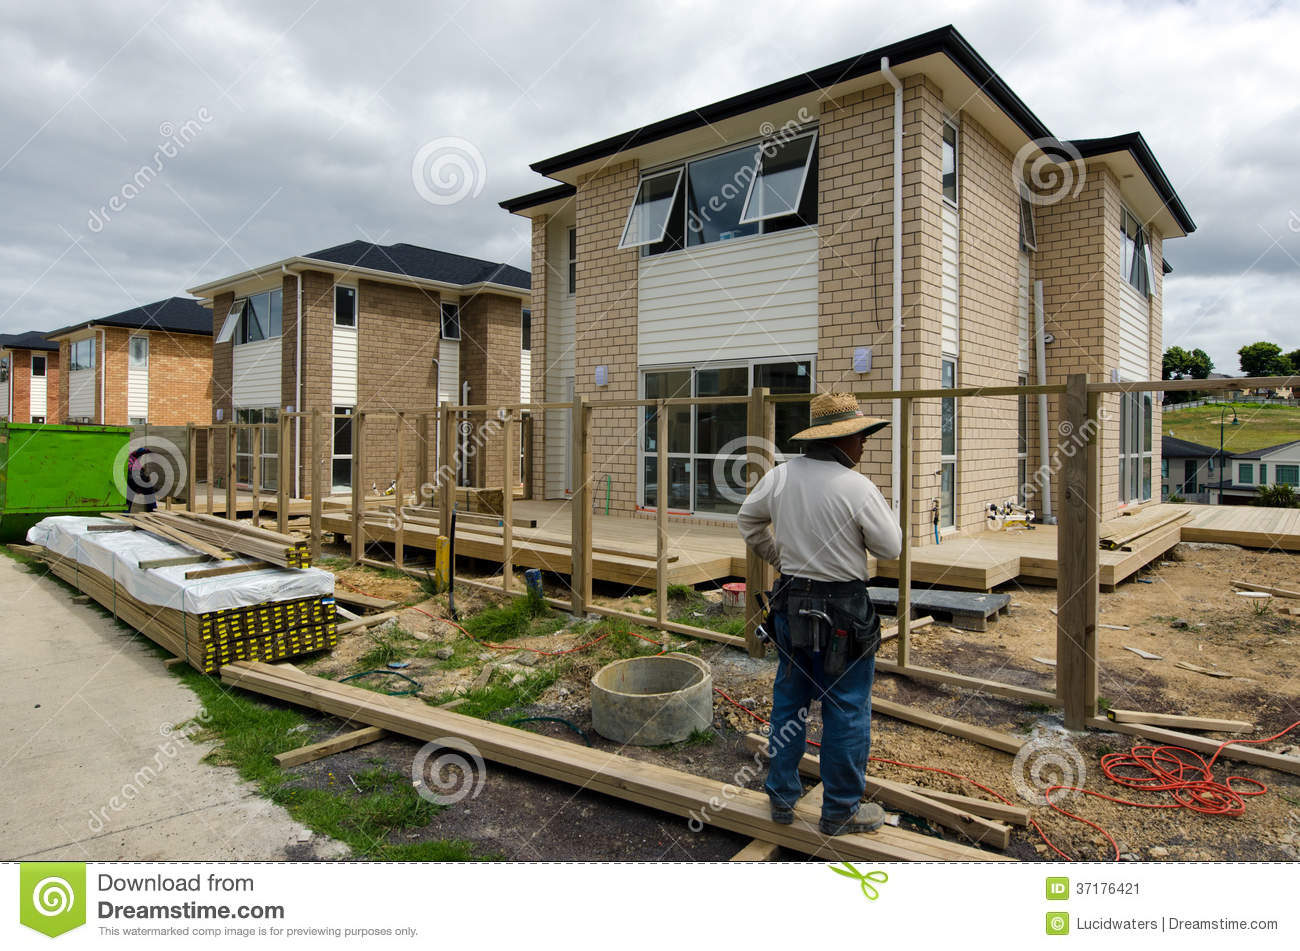 New zealand housing property and real estate market for Building an estate